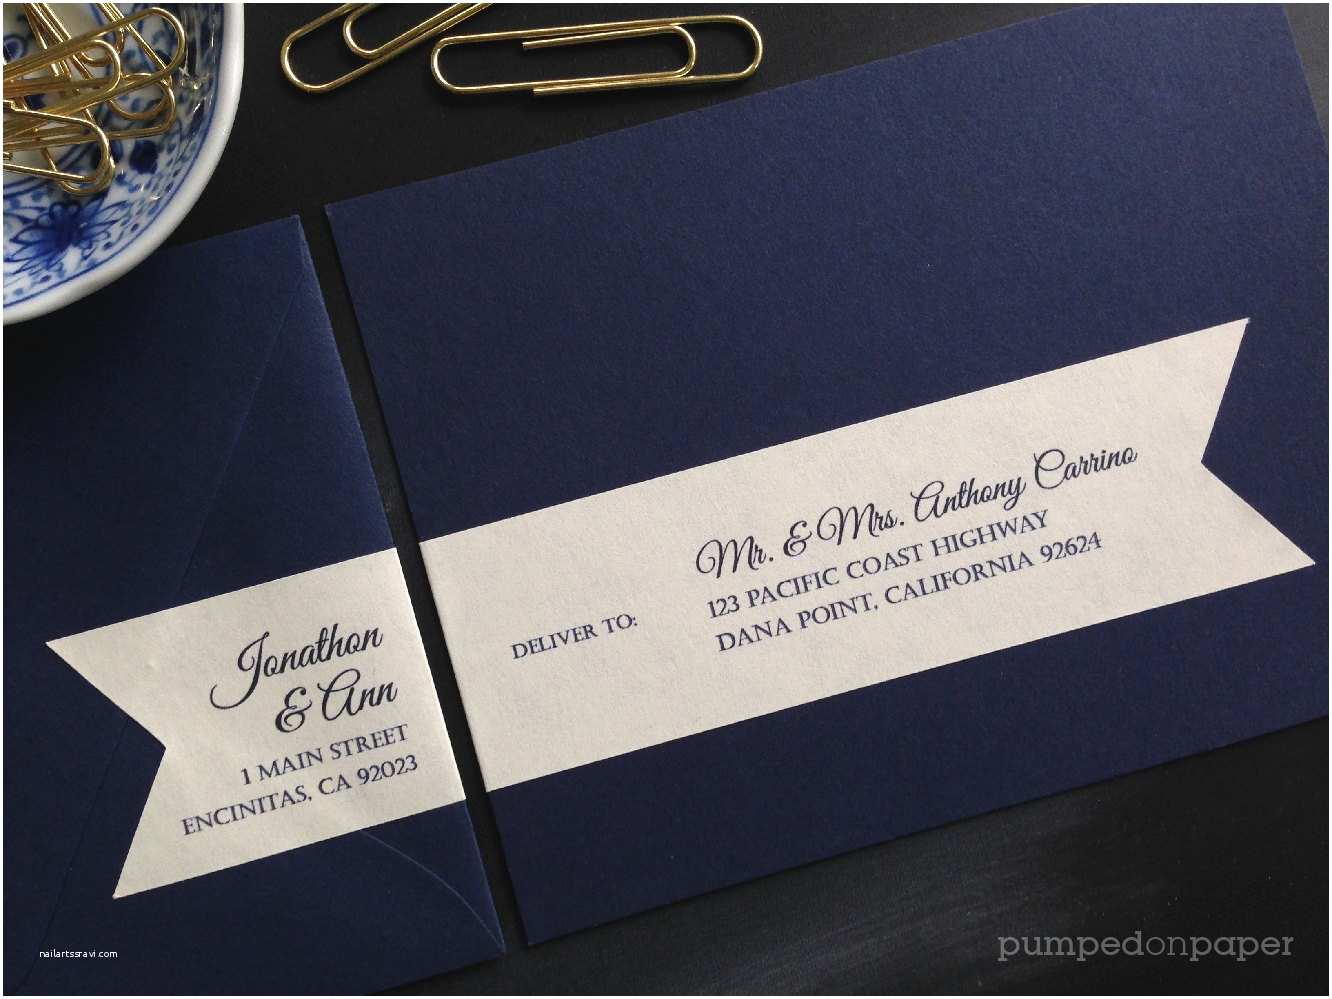 Printed Address Labels for Wedding Invitations Address Labels for Wedding Invitations Personalized Return